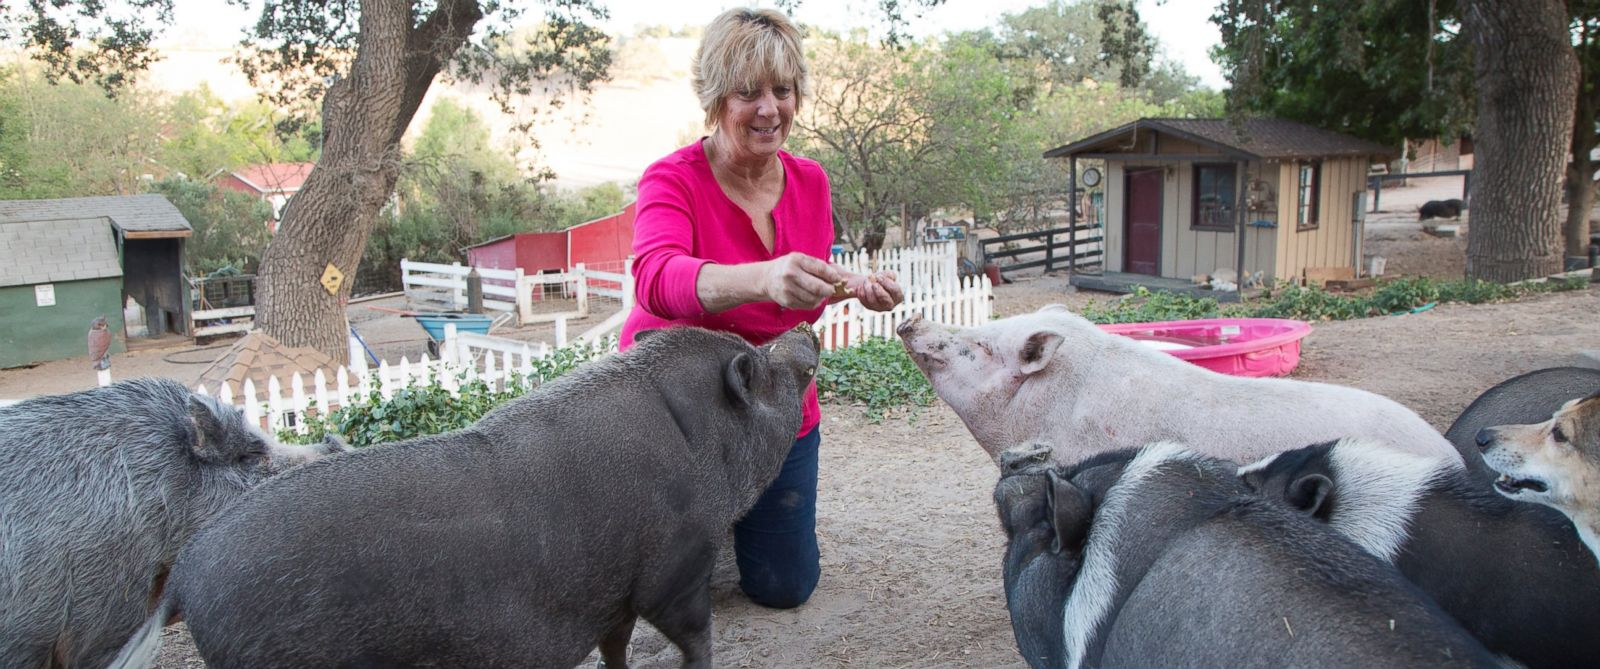 PHOTO: Susan Parkinson feeds her rescue pigs at the Lil Orphan Hammies sanctuary in Solvang, Calif.